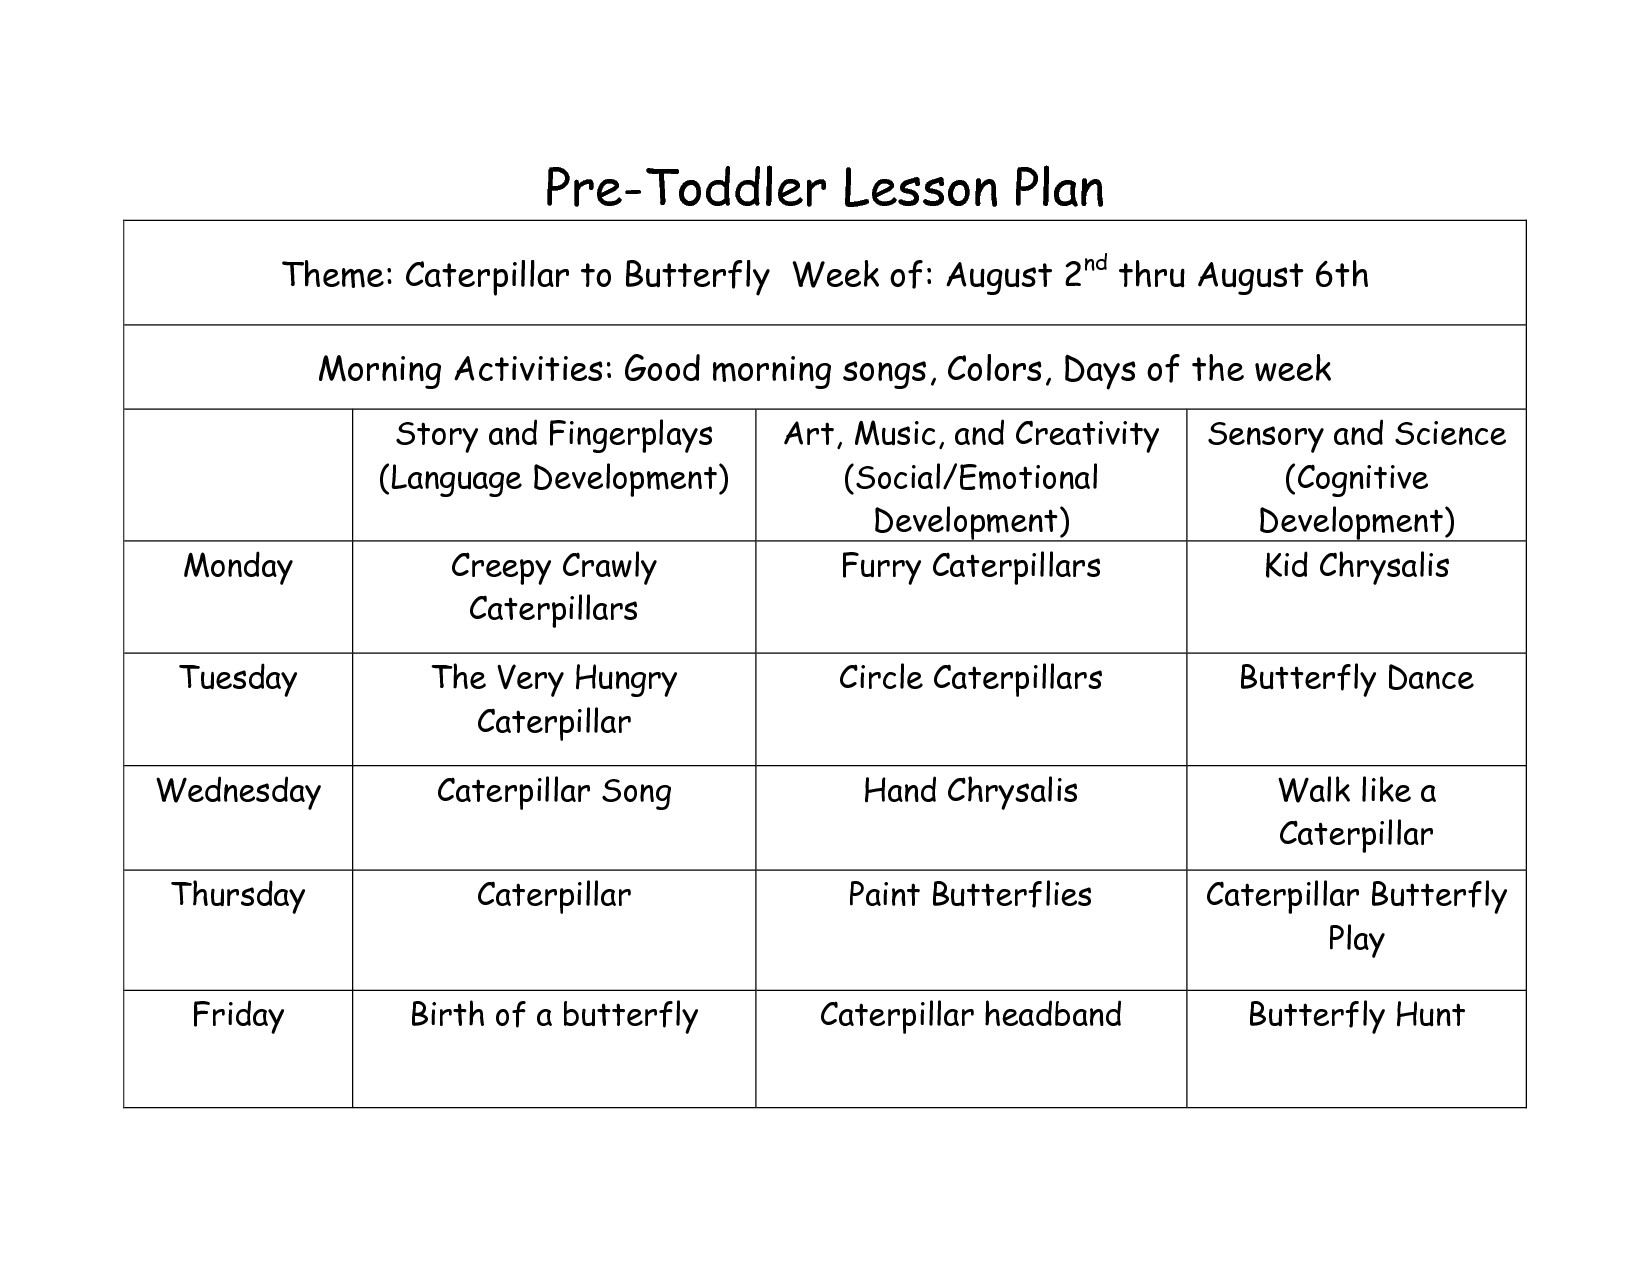 Infant Lesson Plan Template toddler Curriculum Lesson Plans Yahoo Image Search